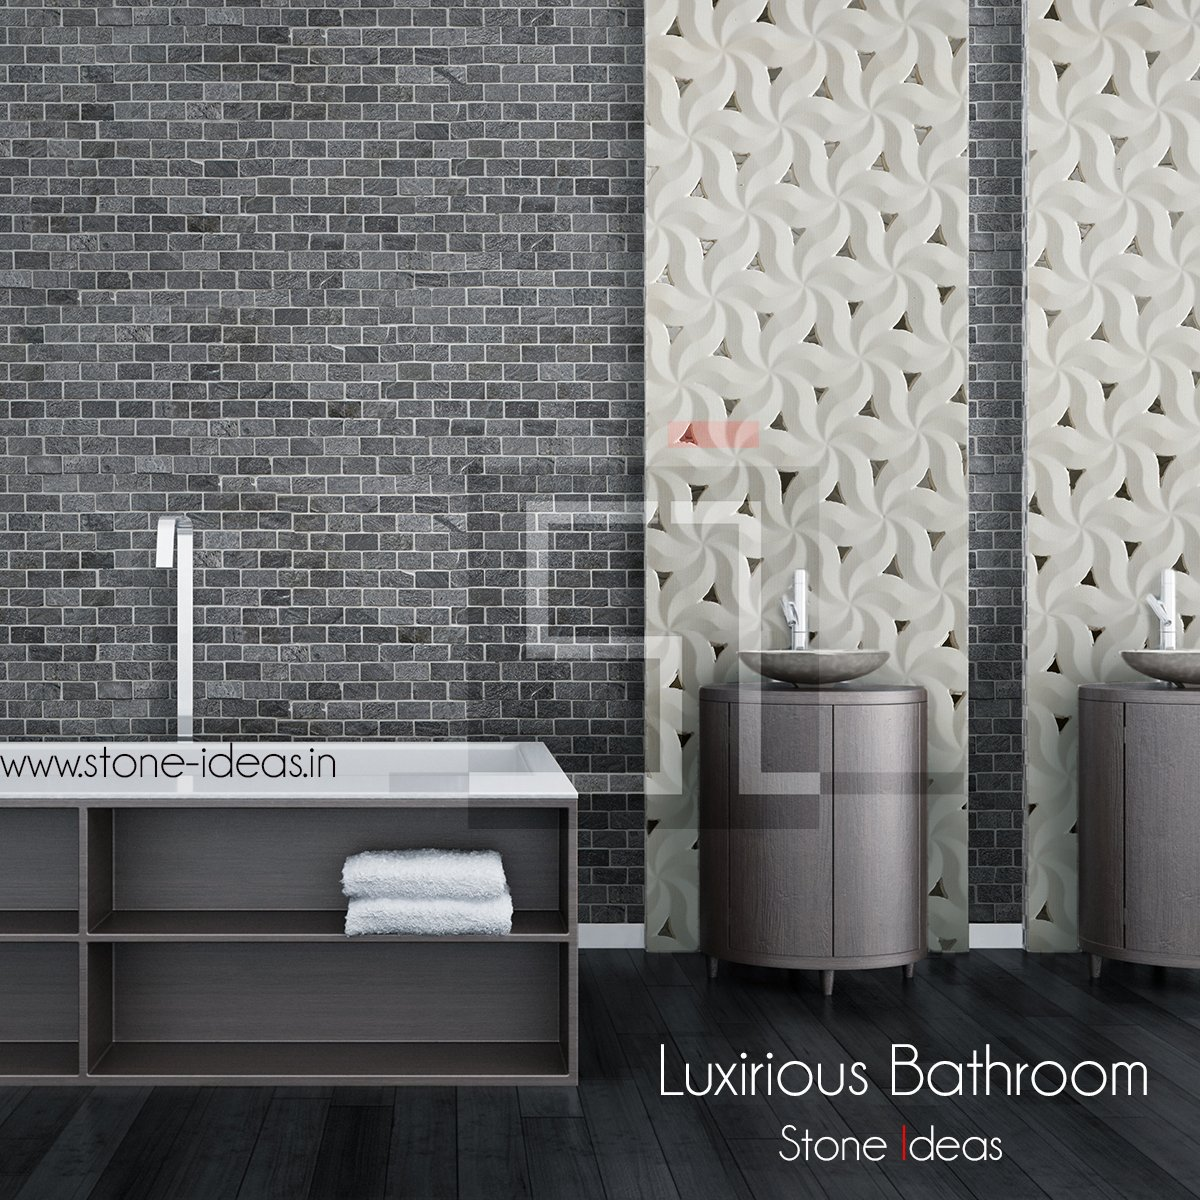 Stone Ideas On Twitter The Bathroom Wall That Make Big Impact Design A Bathroom Wall With Stone Ideas S Premium Bathroom Cladding Tiles Bathroom Bathroomdesign Ideas Interiors Wallcladding Stonecladding Stonetiles Walltiles Stonemosaic